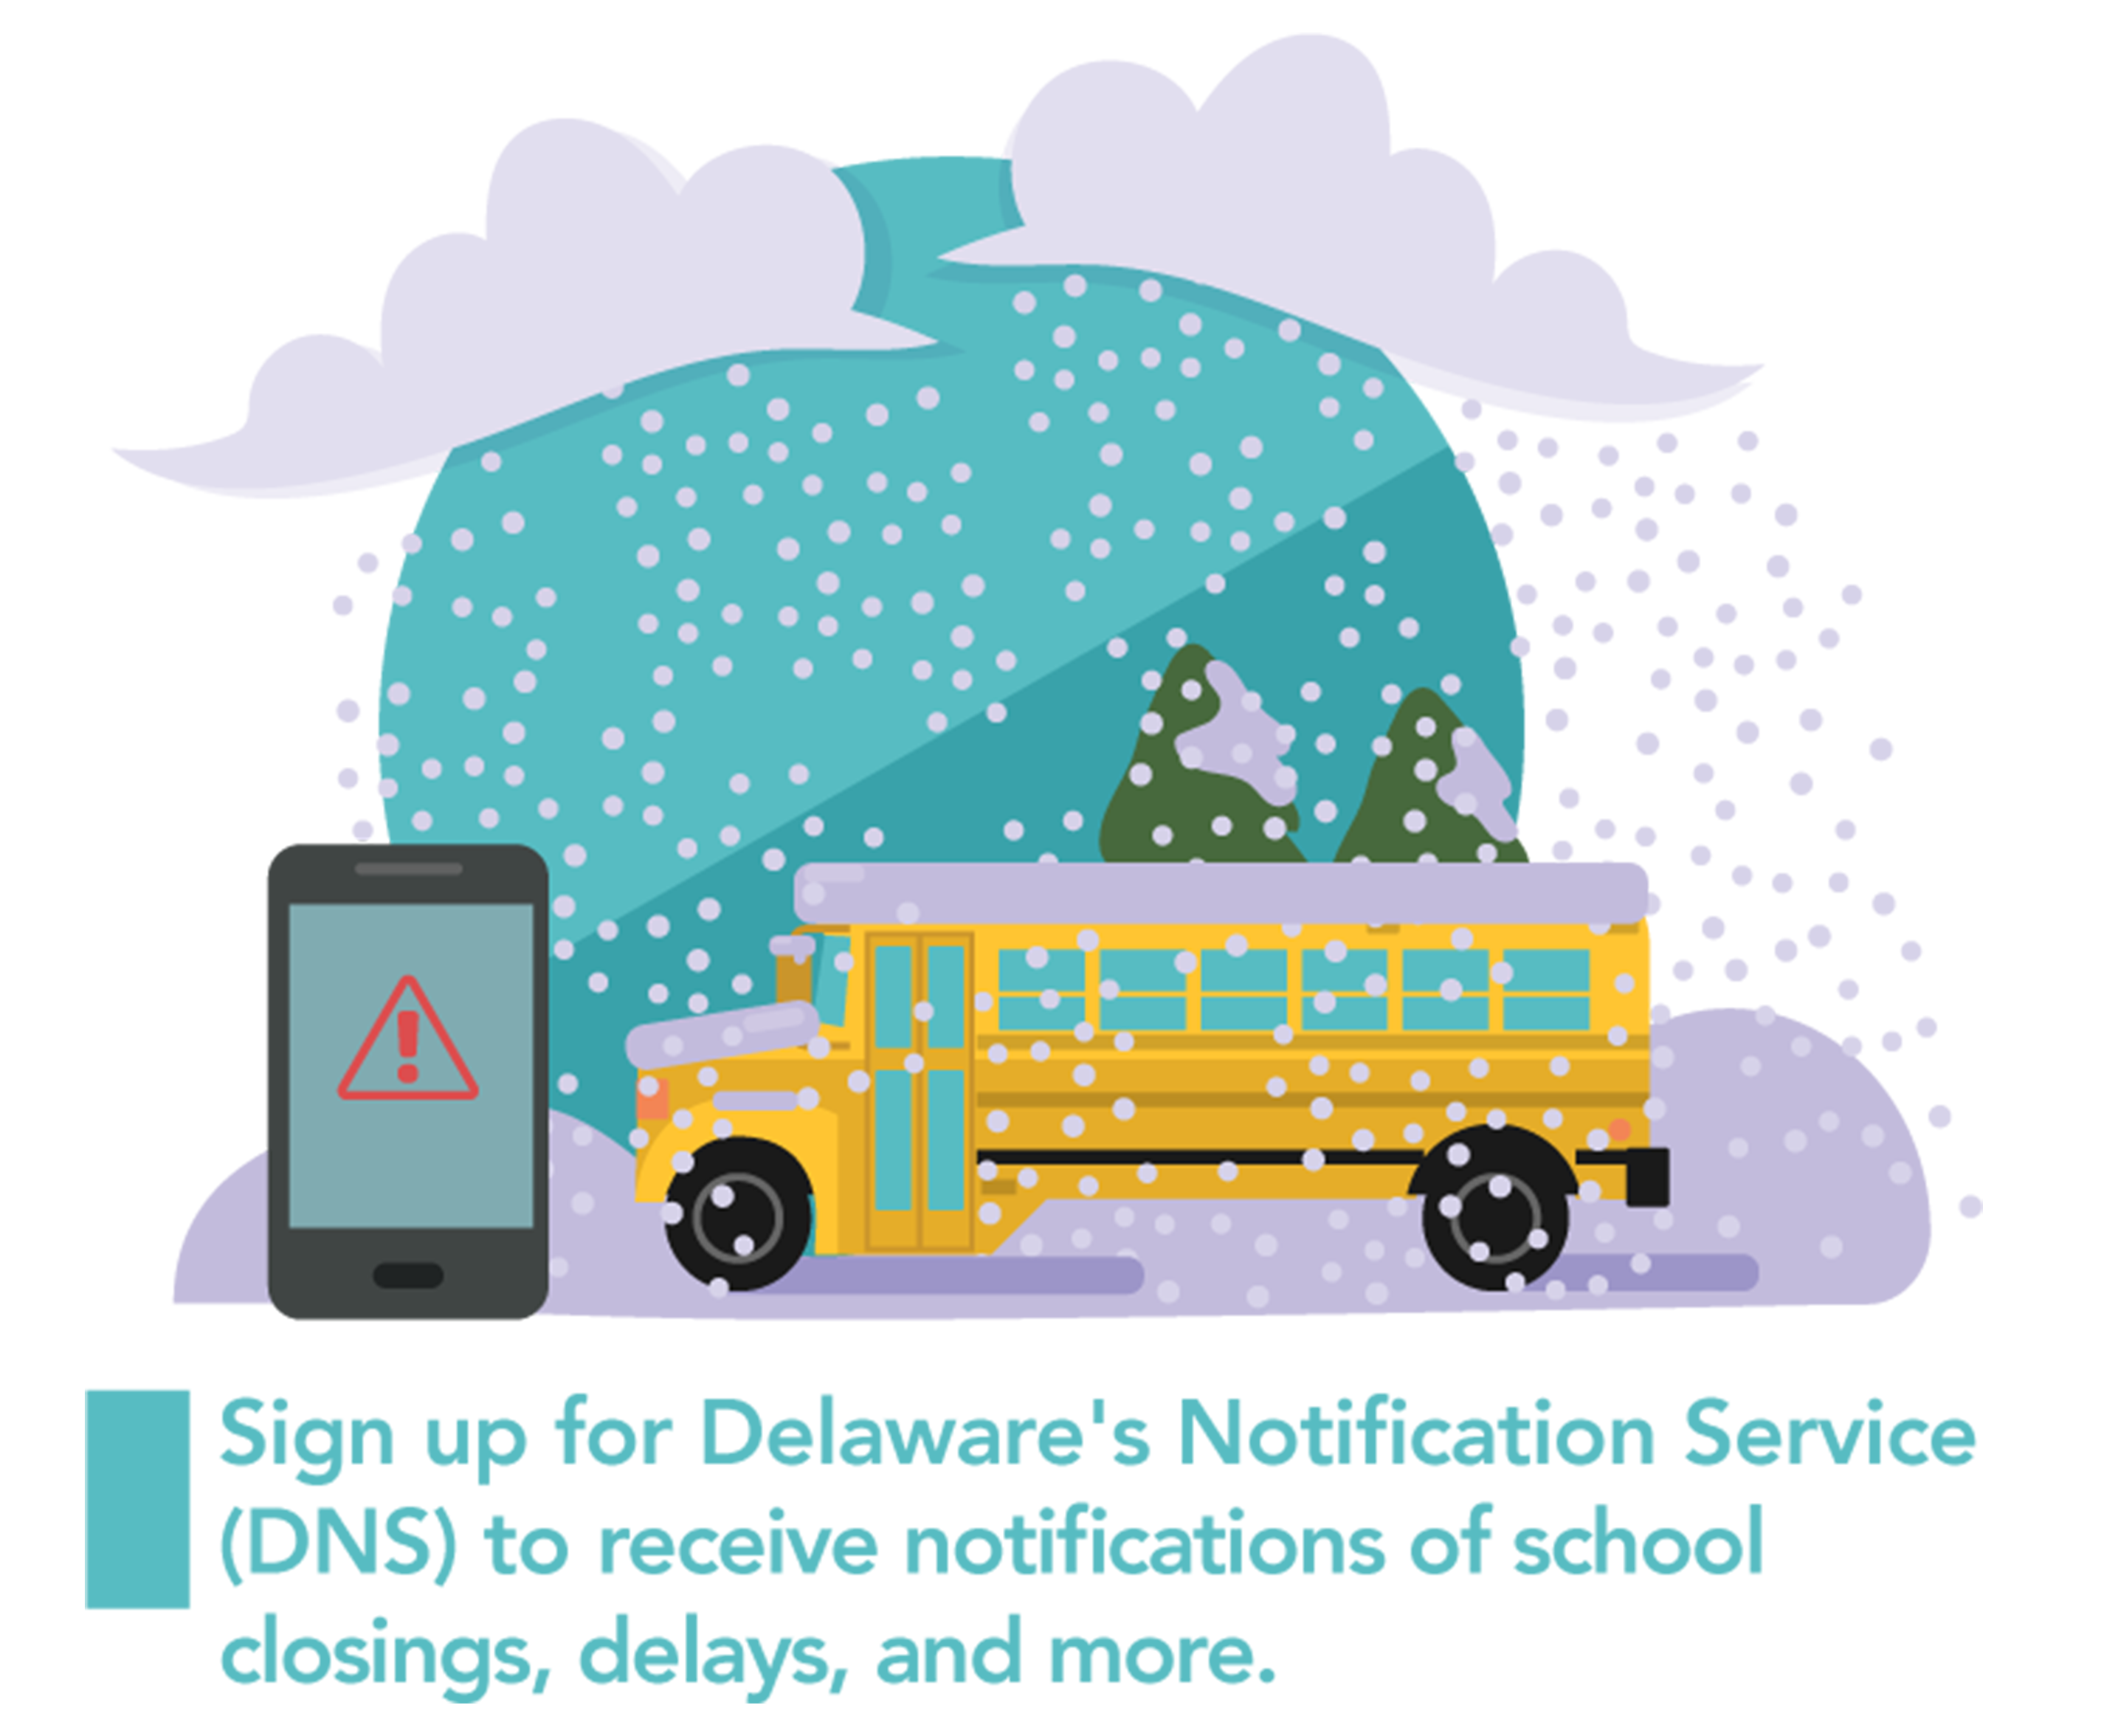 A graphic of a bus in snowy weather and a mobile phone representing the DNS Sign Up.